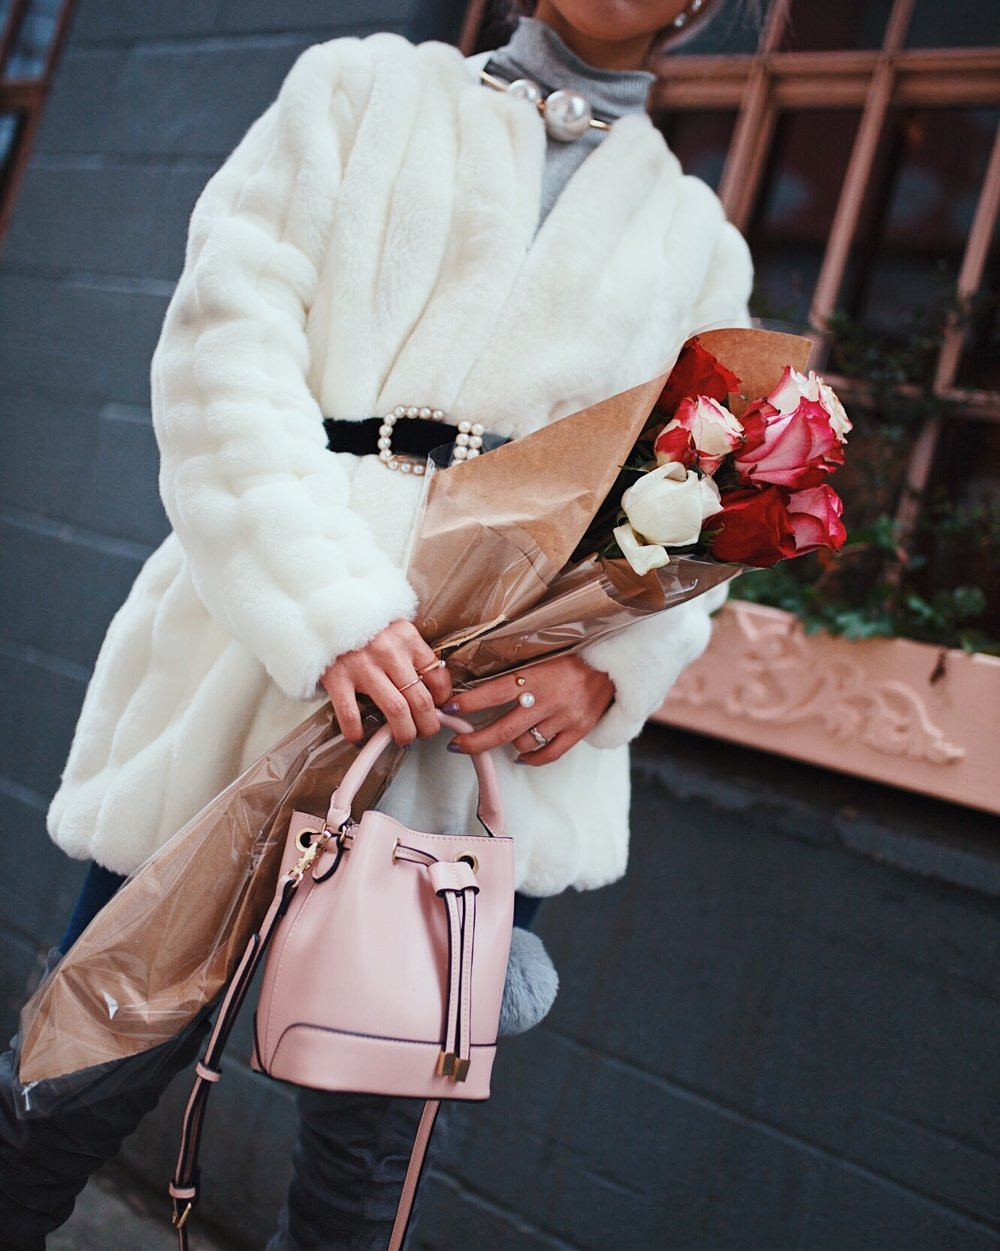 H&M Gray Turtleneck Sweater-ASOS high waisted skinny jean-EGO Grey Over the Knee Boots-While Faux Fur Coat-Forever 21 Pearl Belt & Pink Mini Basket Bag-Chanel Ribbon Hair-Valentine's Day-Rose bouquet-Pink Hair-Japanese-Seattle Style Fashion Blogger-AikA's Love Closet 19